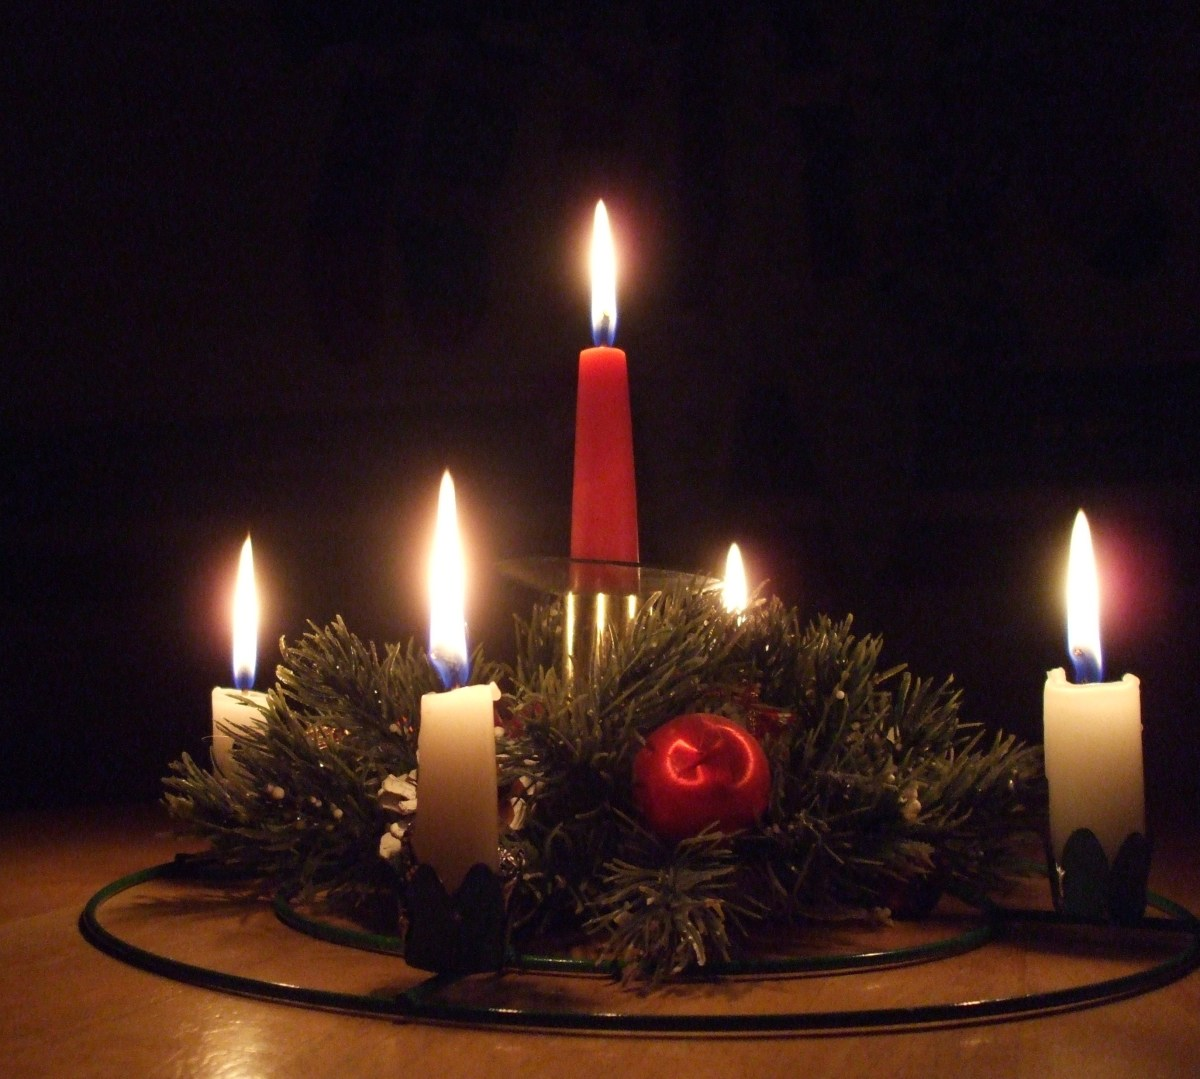 Advent wreath.